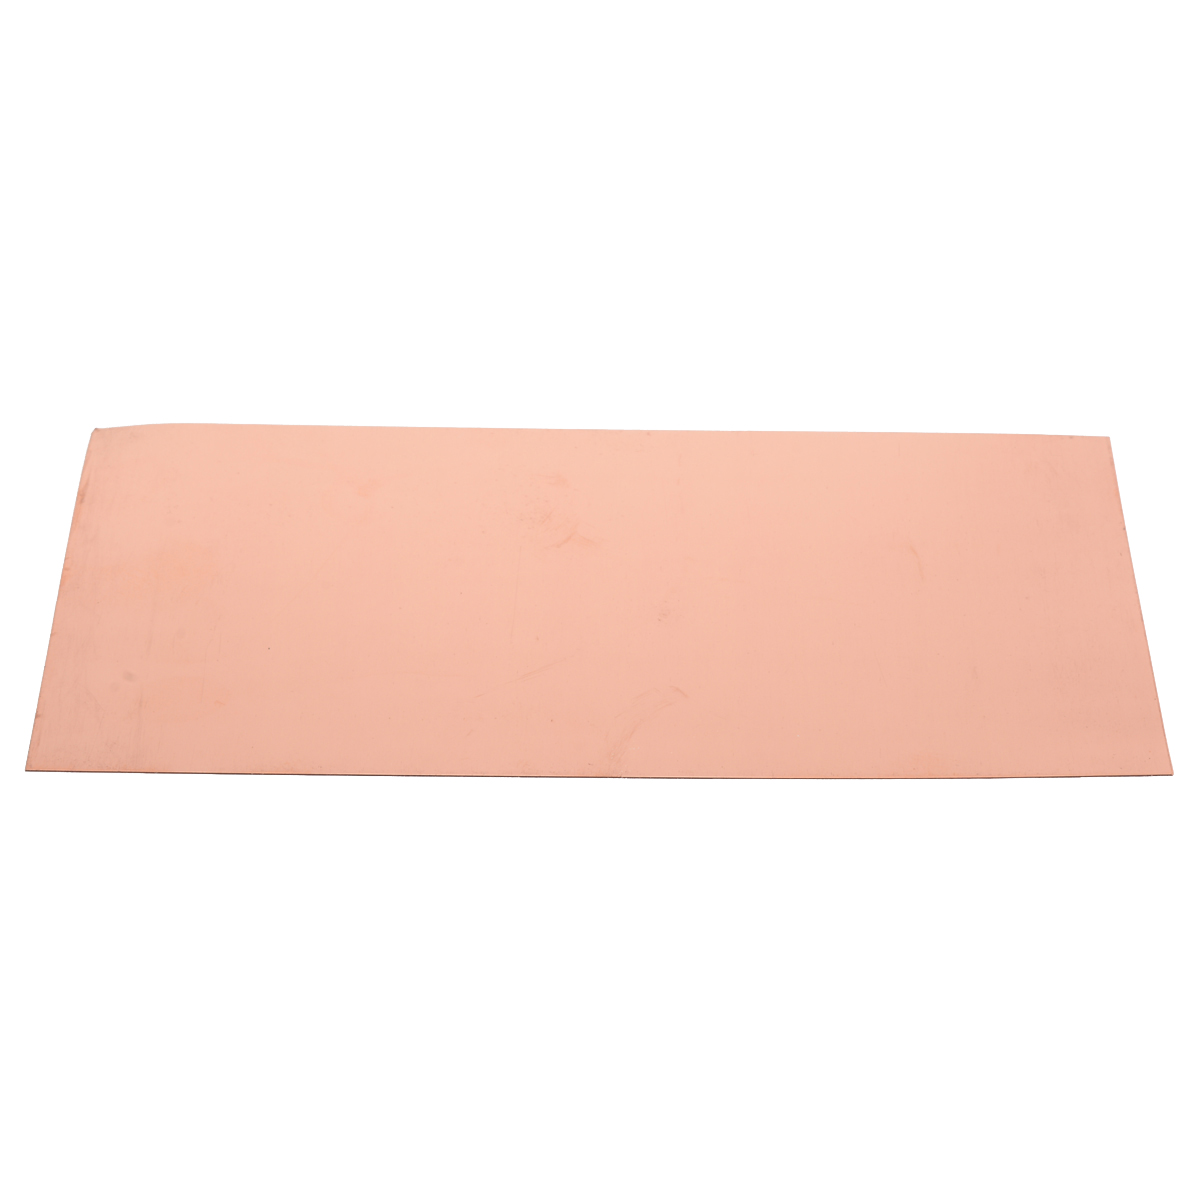 1pc High Purity 99.9% Copper Sheet Pure Cu Metal Plate 0.5mm Thickness Foil Panel Practical Industry Supply 100*200mm